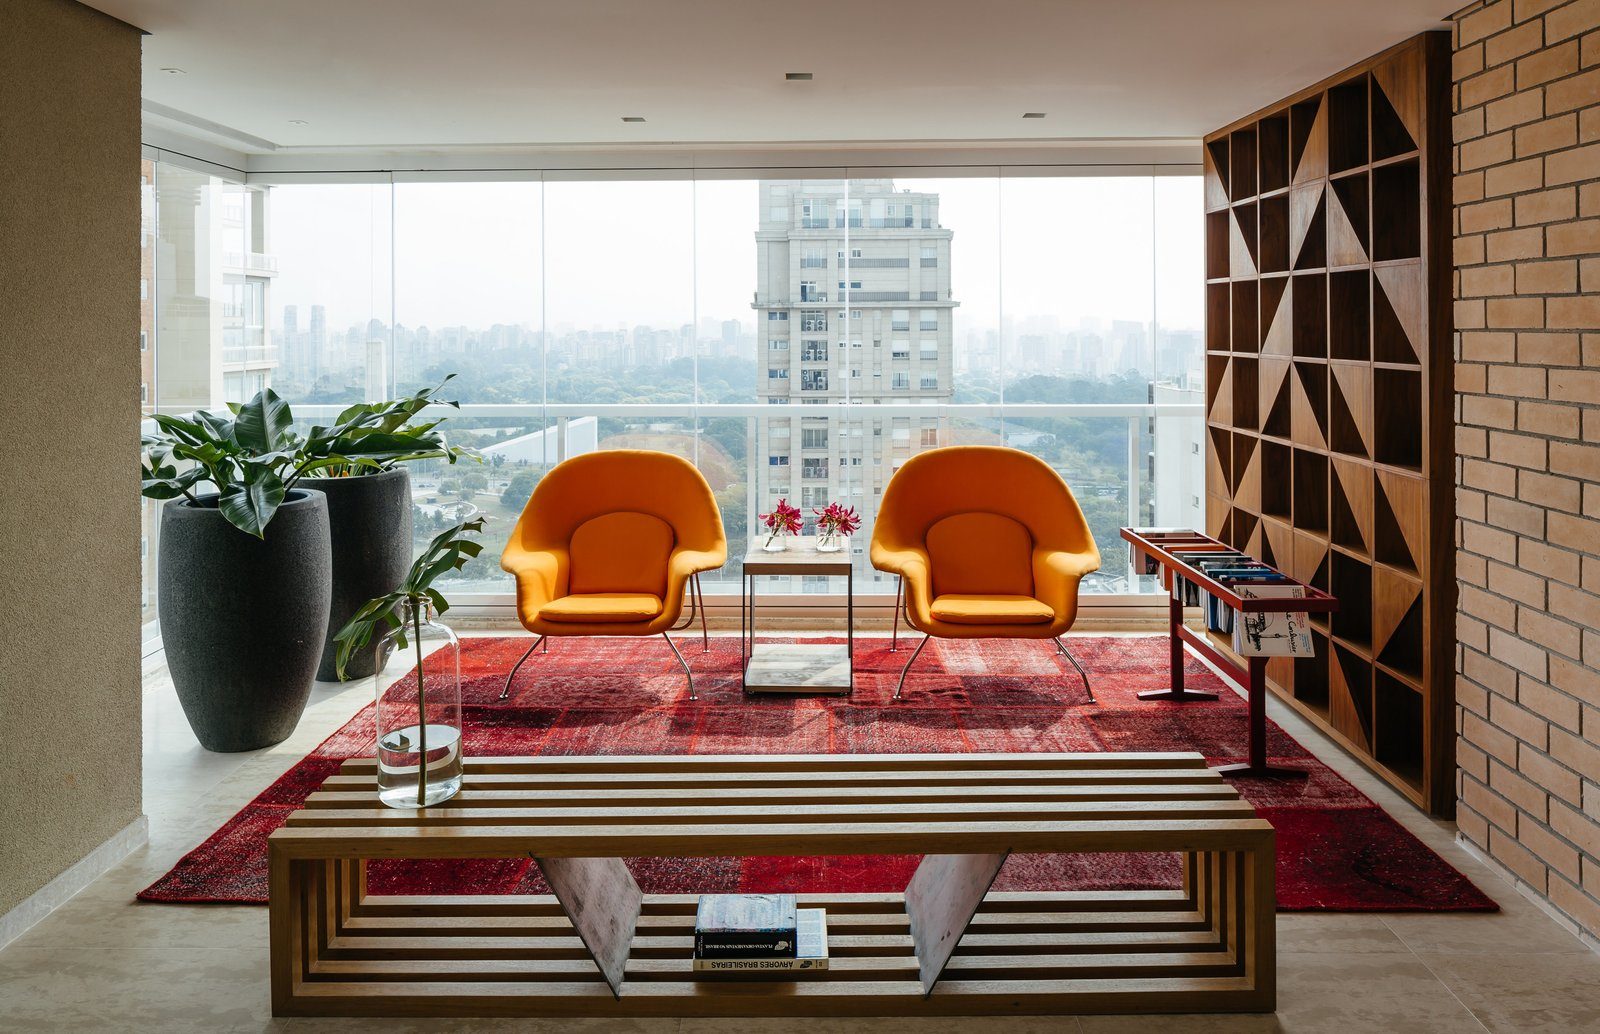 Two Womb chairs by Eero Saarinen for Knoll and a Ring bench by Castro structure a reading area in the enclosed terrace. Overlooking a Niemeyer Masterpiece, This Flat is Filled with Brazilian Modern Gems - Photo 2 of 9